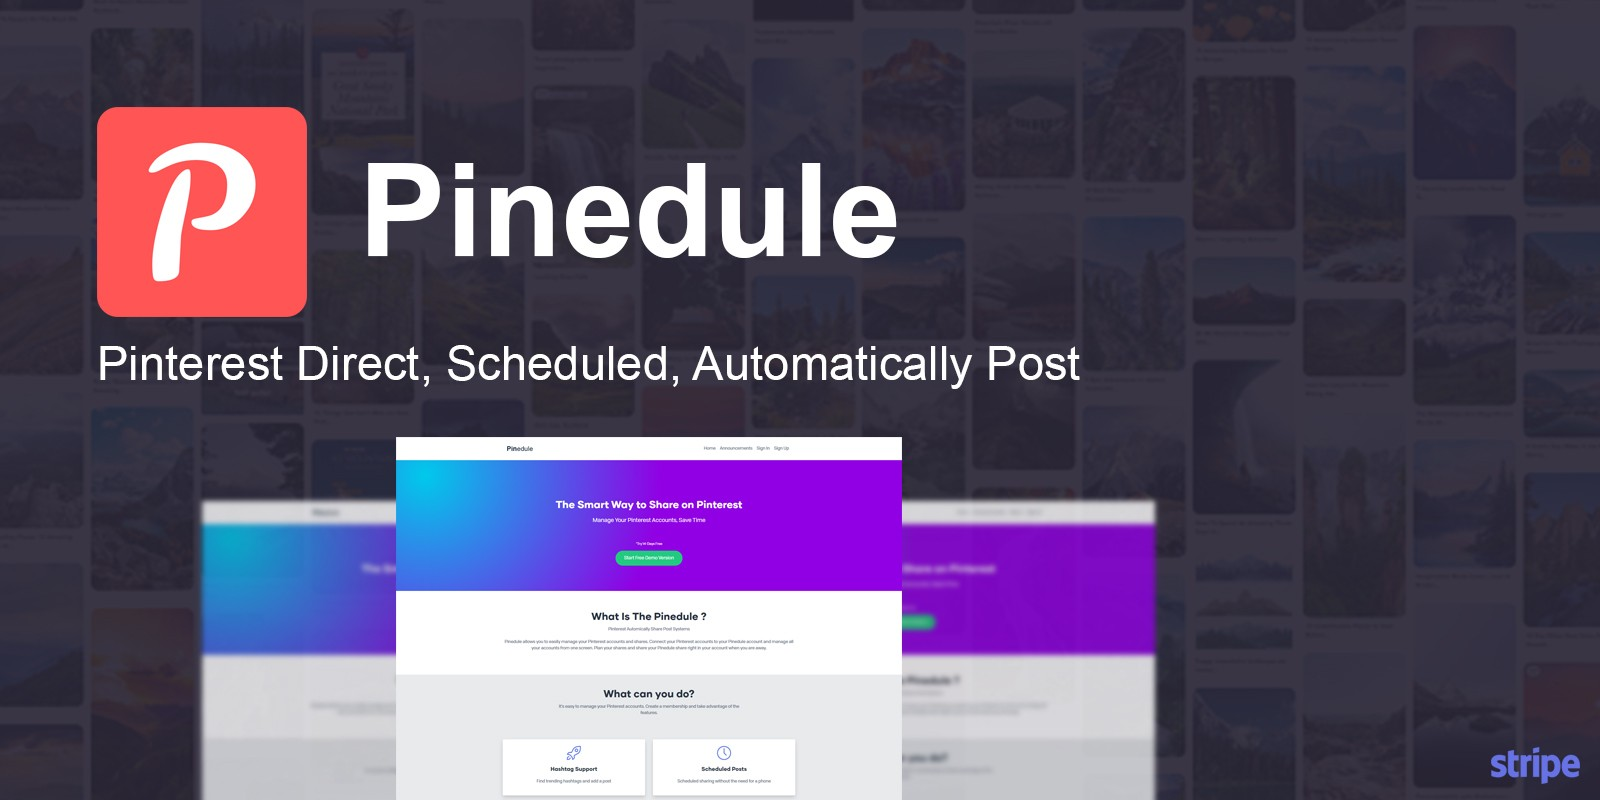 Pinedule - Pinterest Auto Post Script